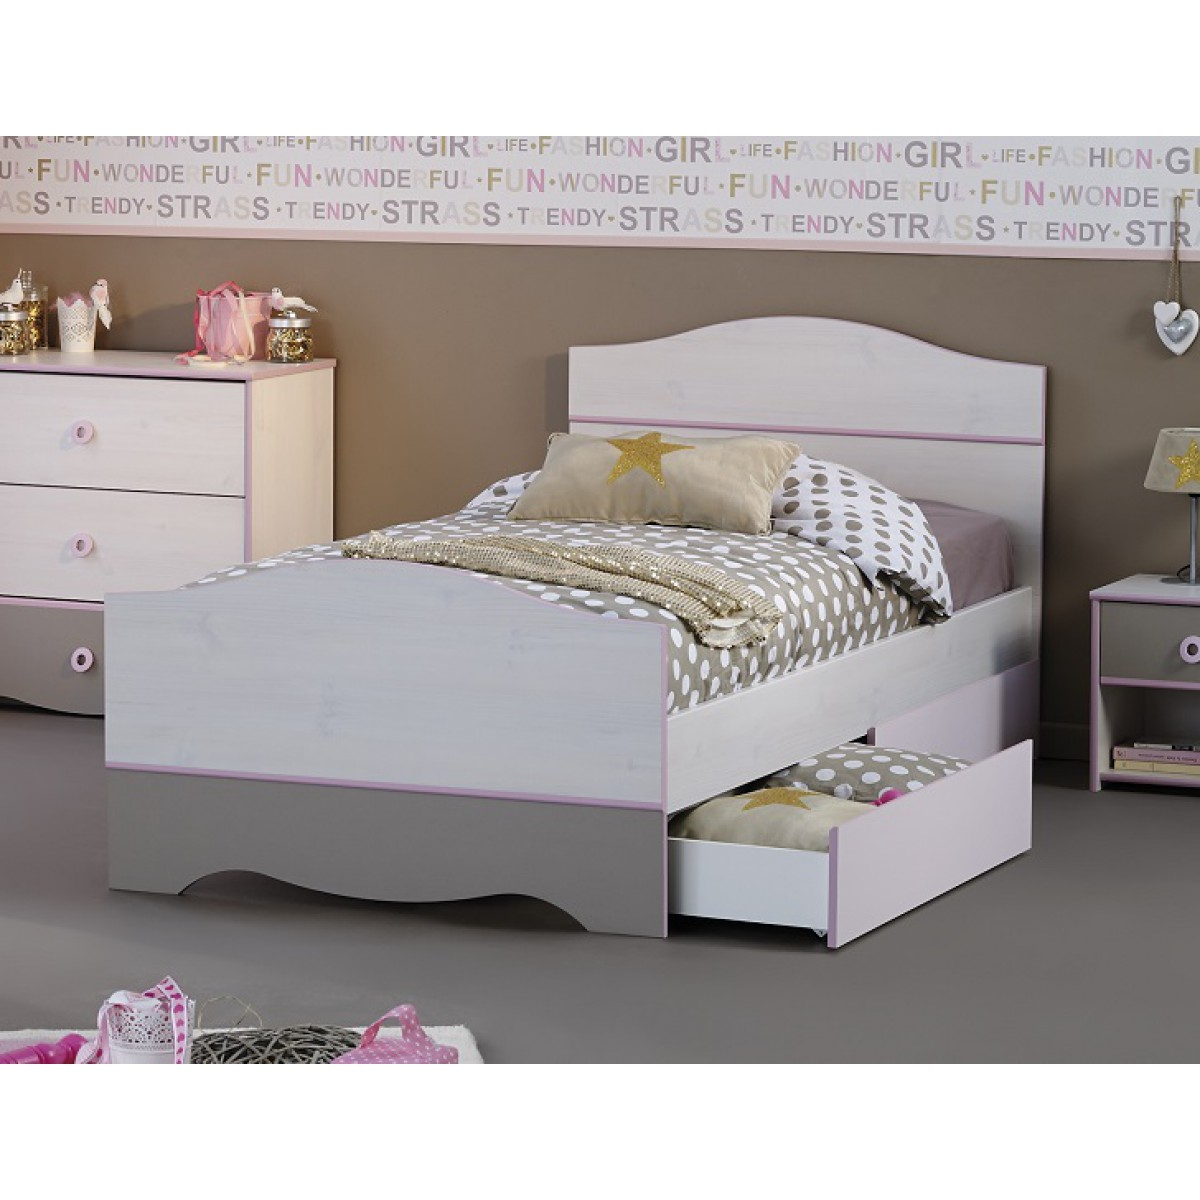 soldes lit enfant. Black Bedroom Furniture Sets. Home Design Ideas